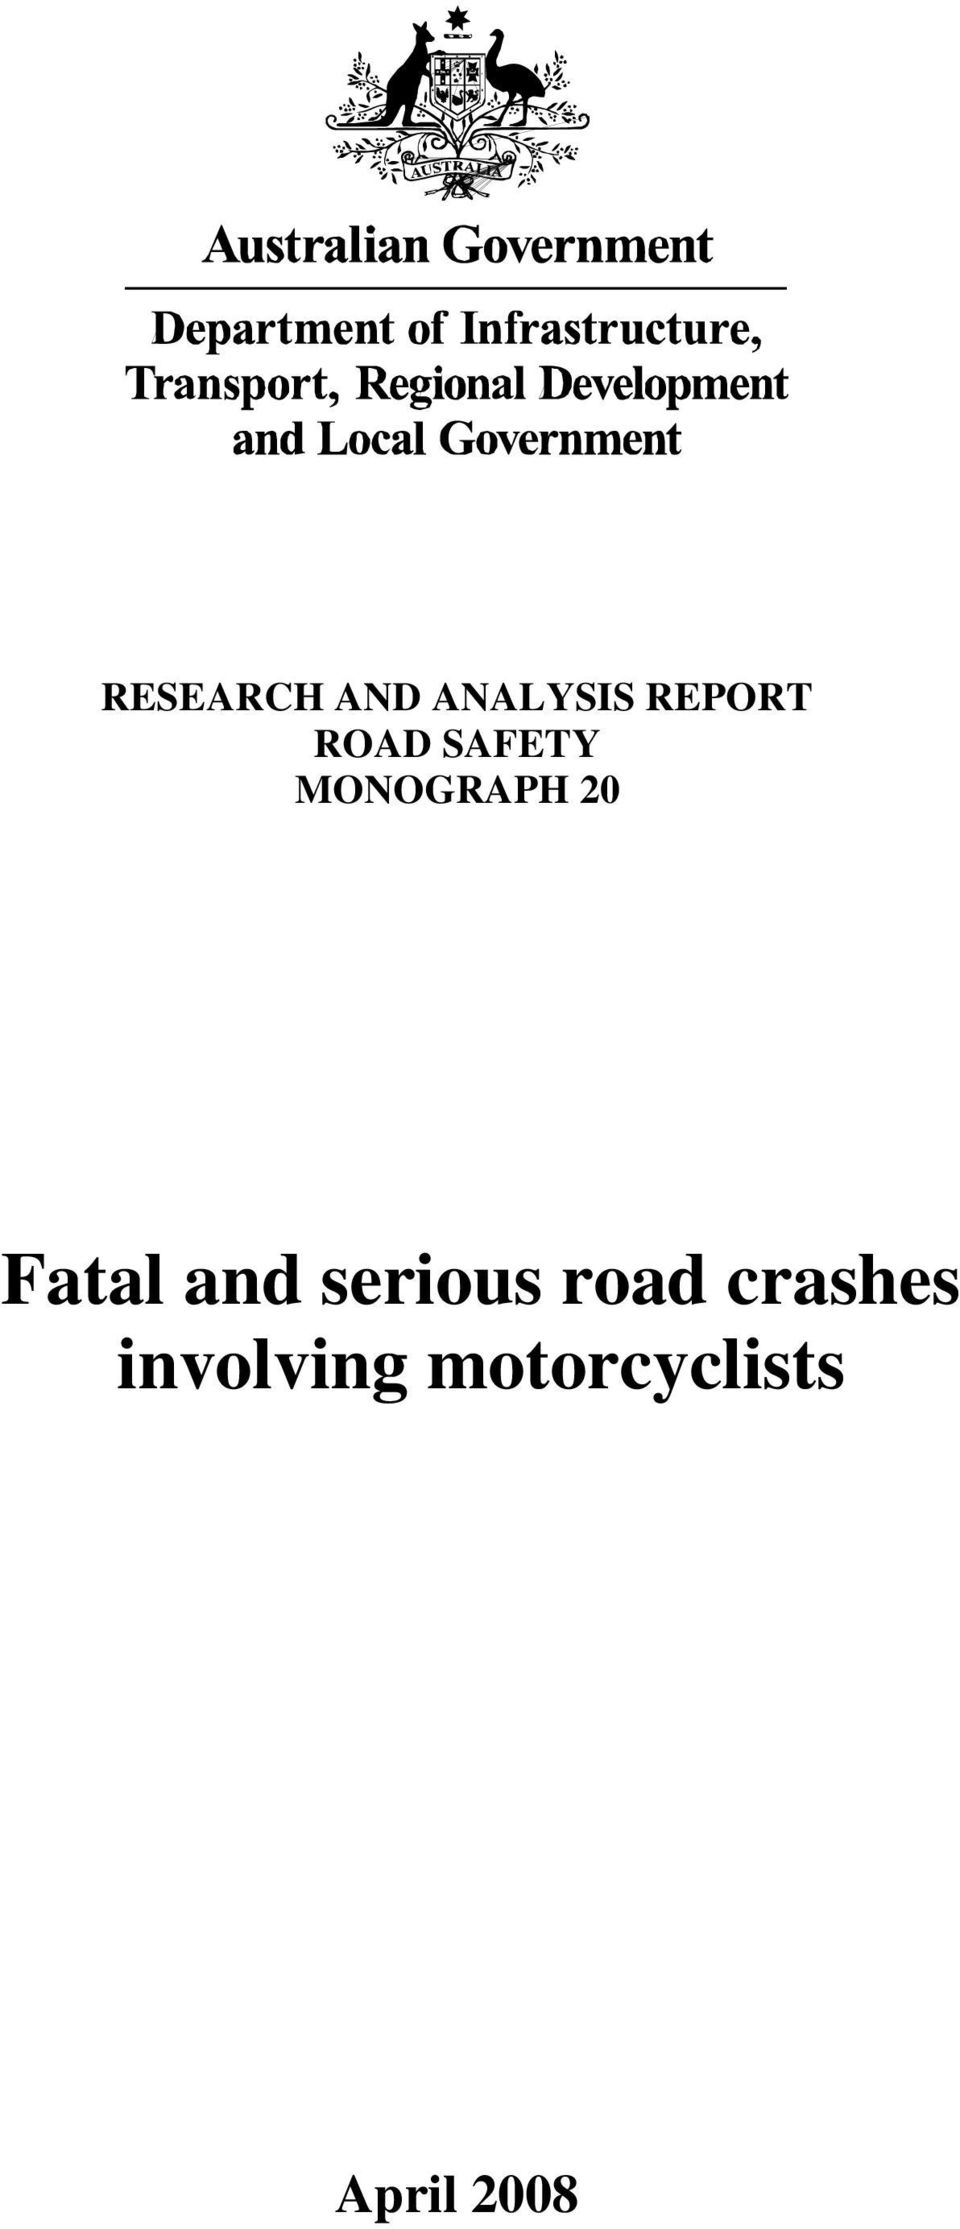 Fatal and serious road